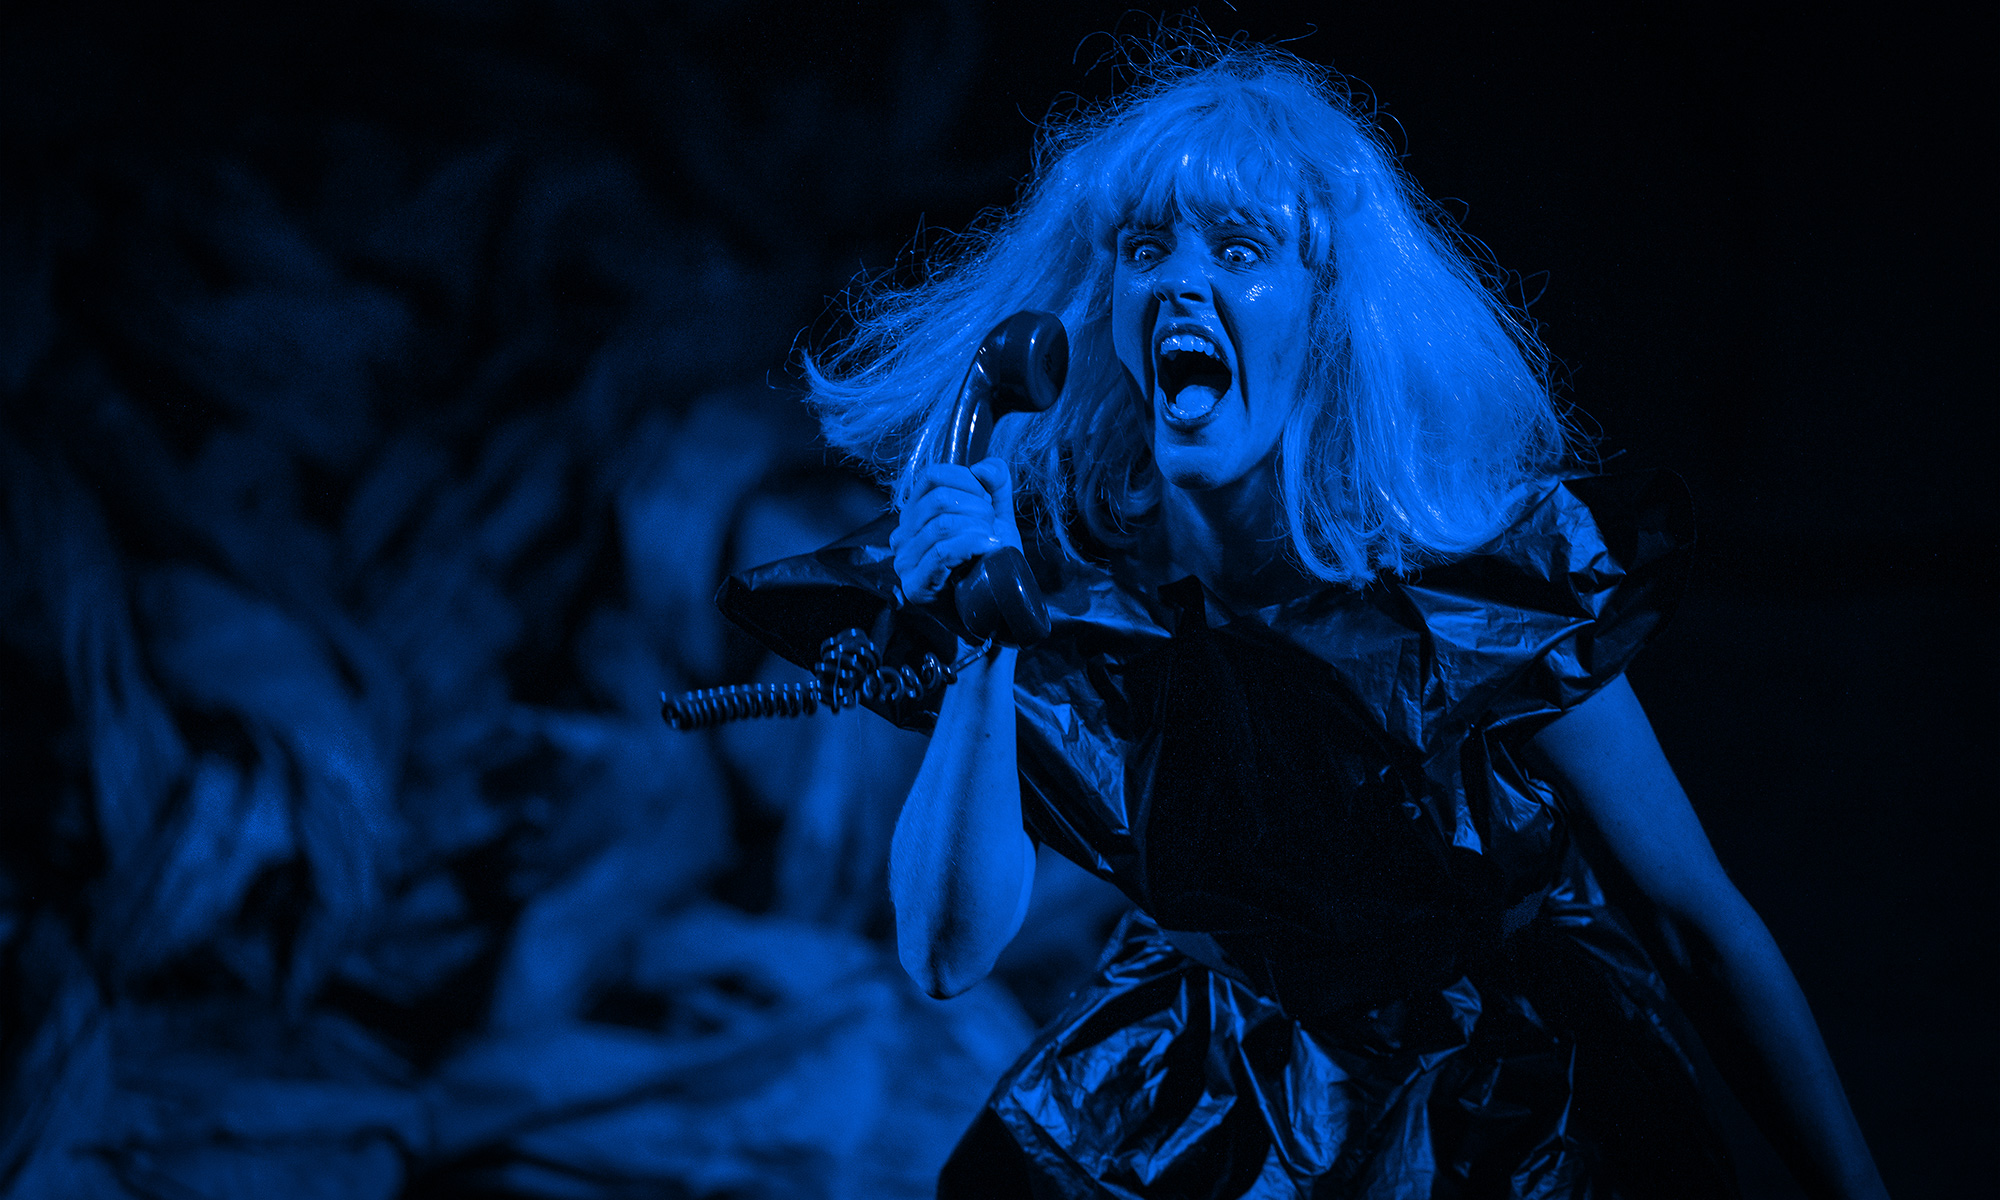 A blue washed image of Andi Snelling mid-performance. She is wearing a blonde wig and holding a phone up to her ear.